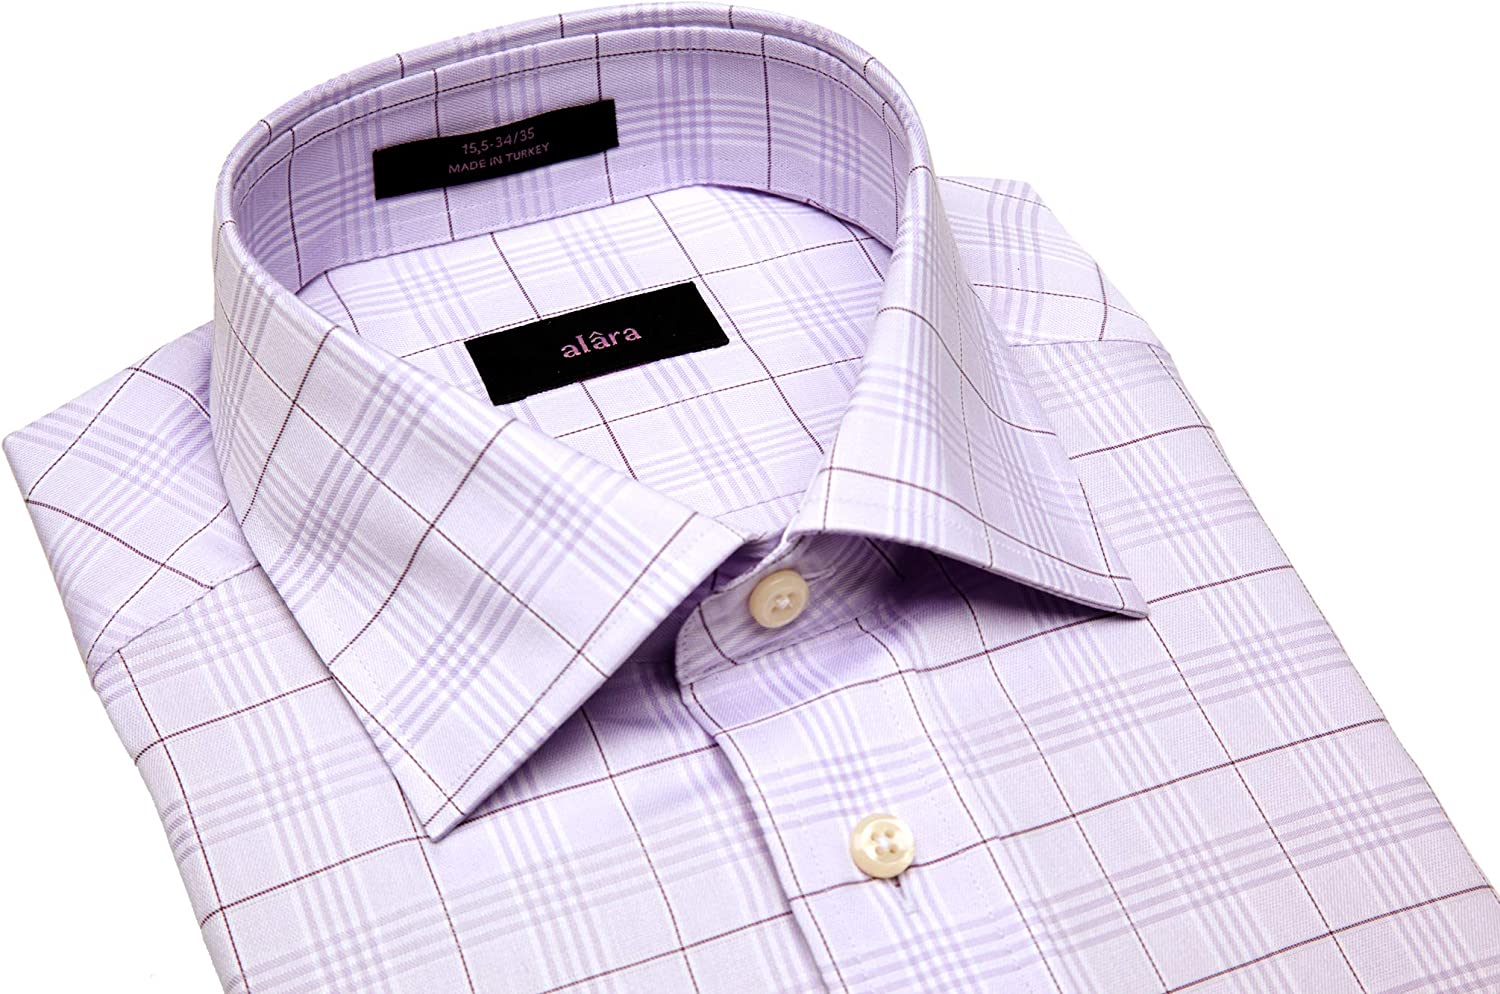 Alara Periwinkle Lux Glen Plaid Egyptian Cotton Dress Shirt with Pocket in Modern Spread Collar